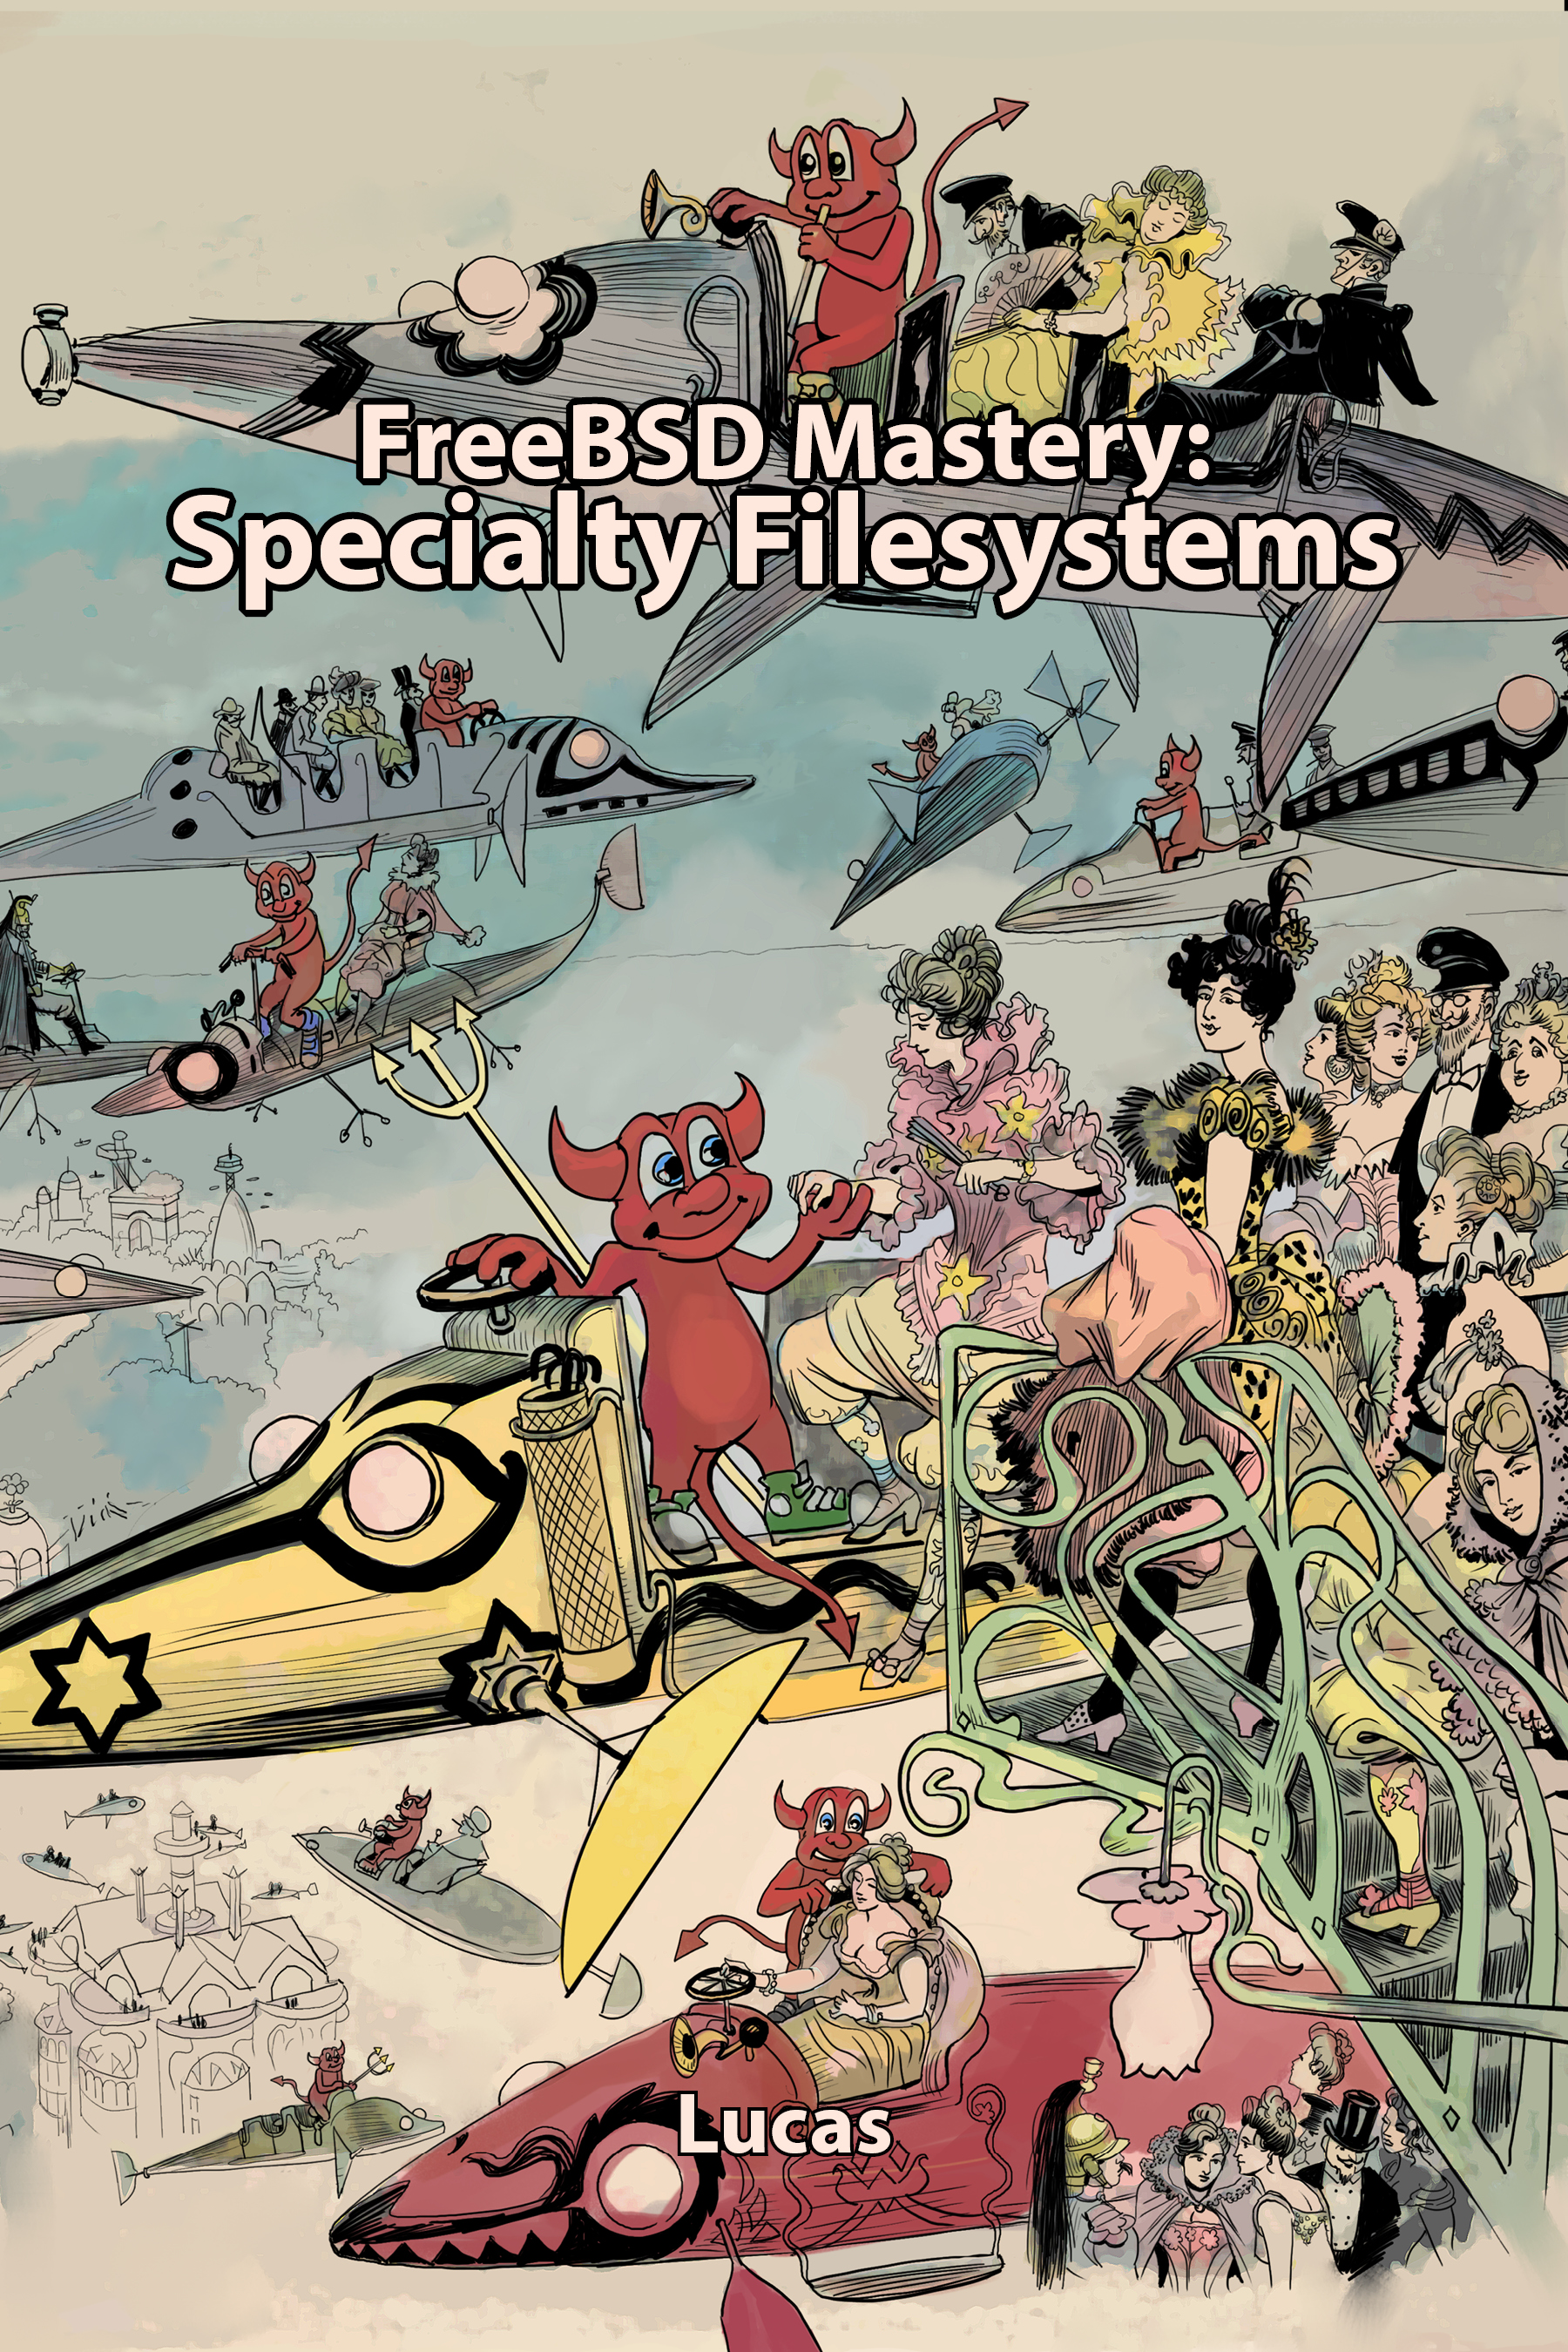 FreeBSD Mastery: Specialty Filesystems cover